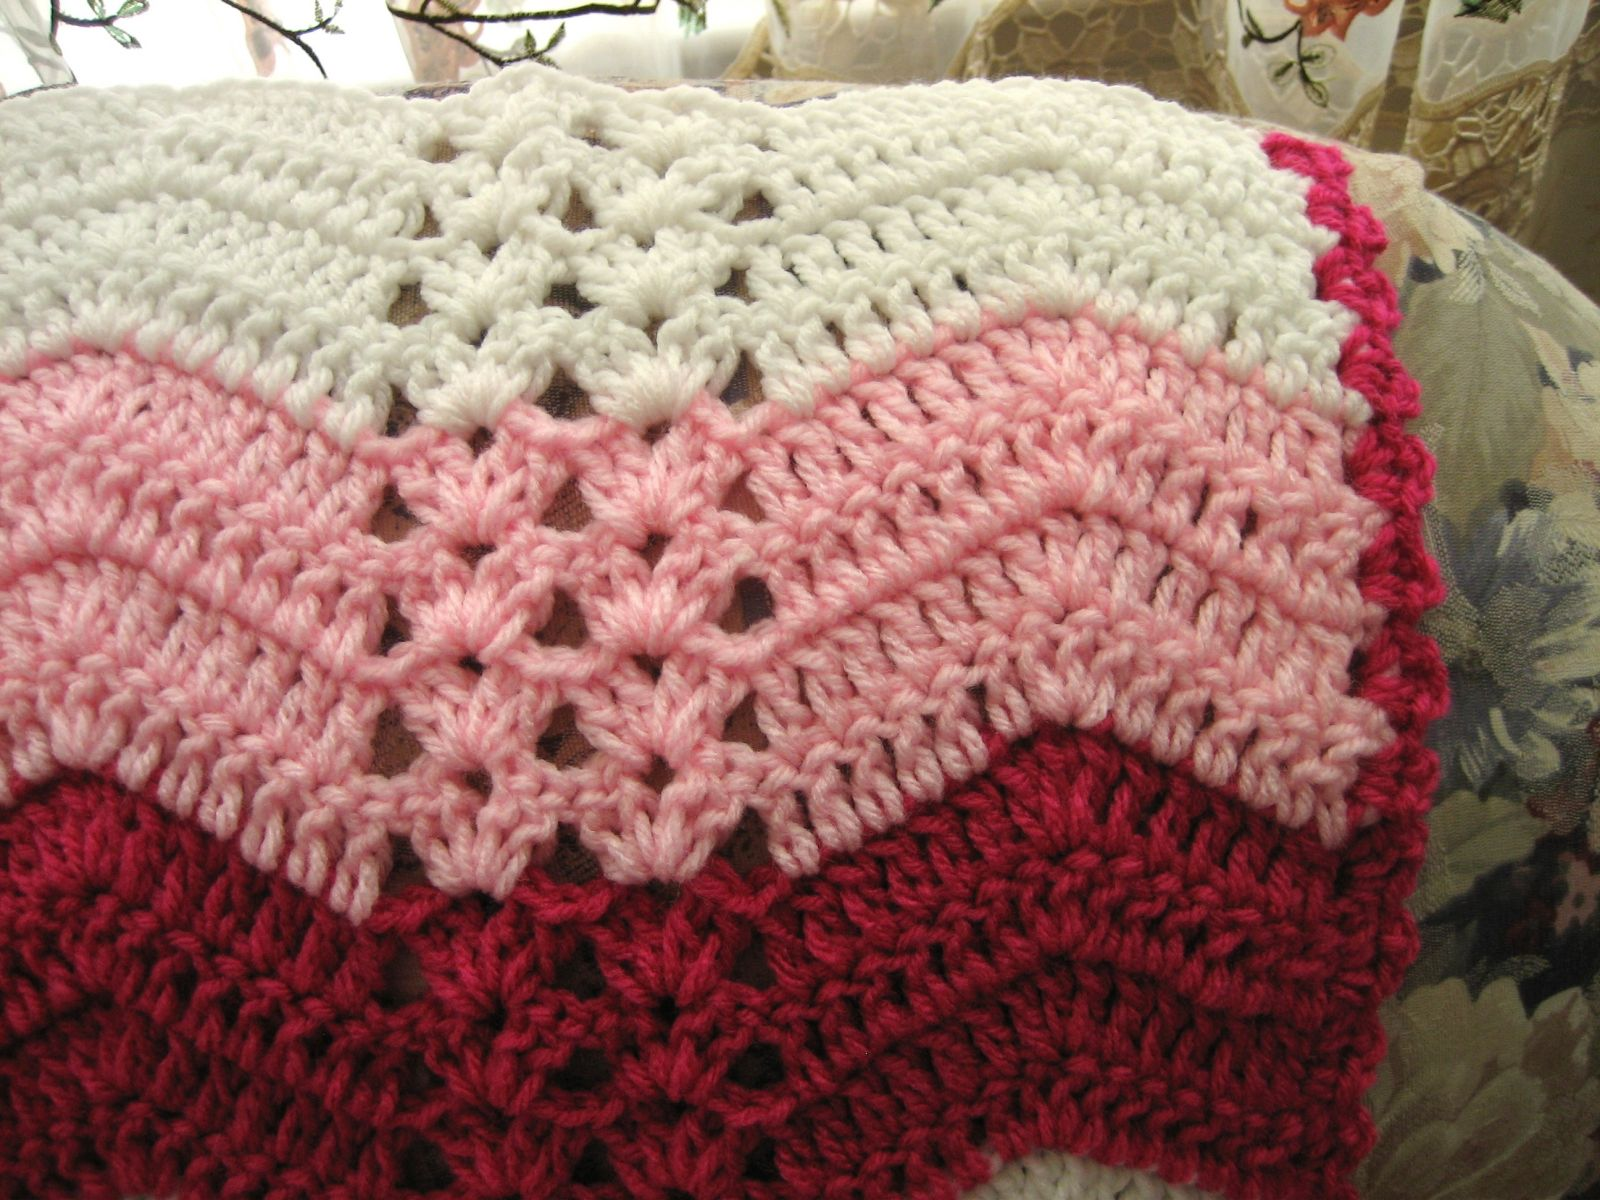 Free Crochet Baby Blanket Ripple Patterns : Ripple Crochet Pattern Related Keywords & Suggestions ...